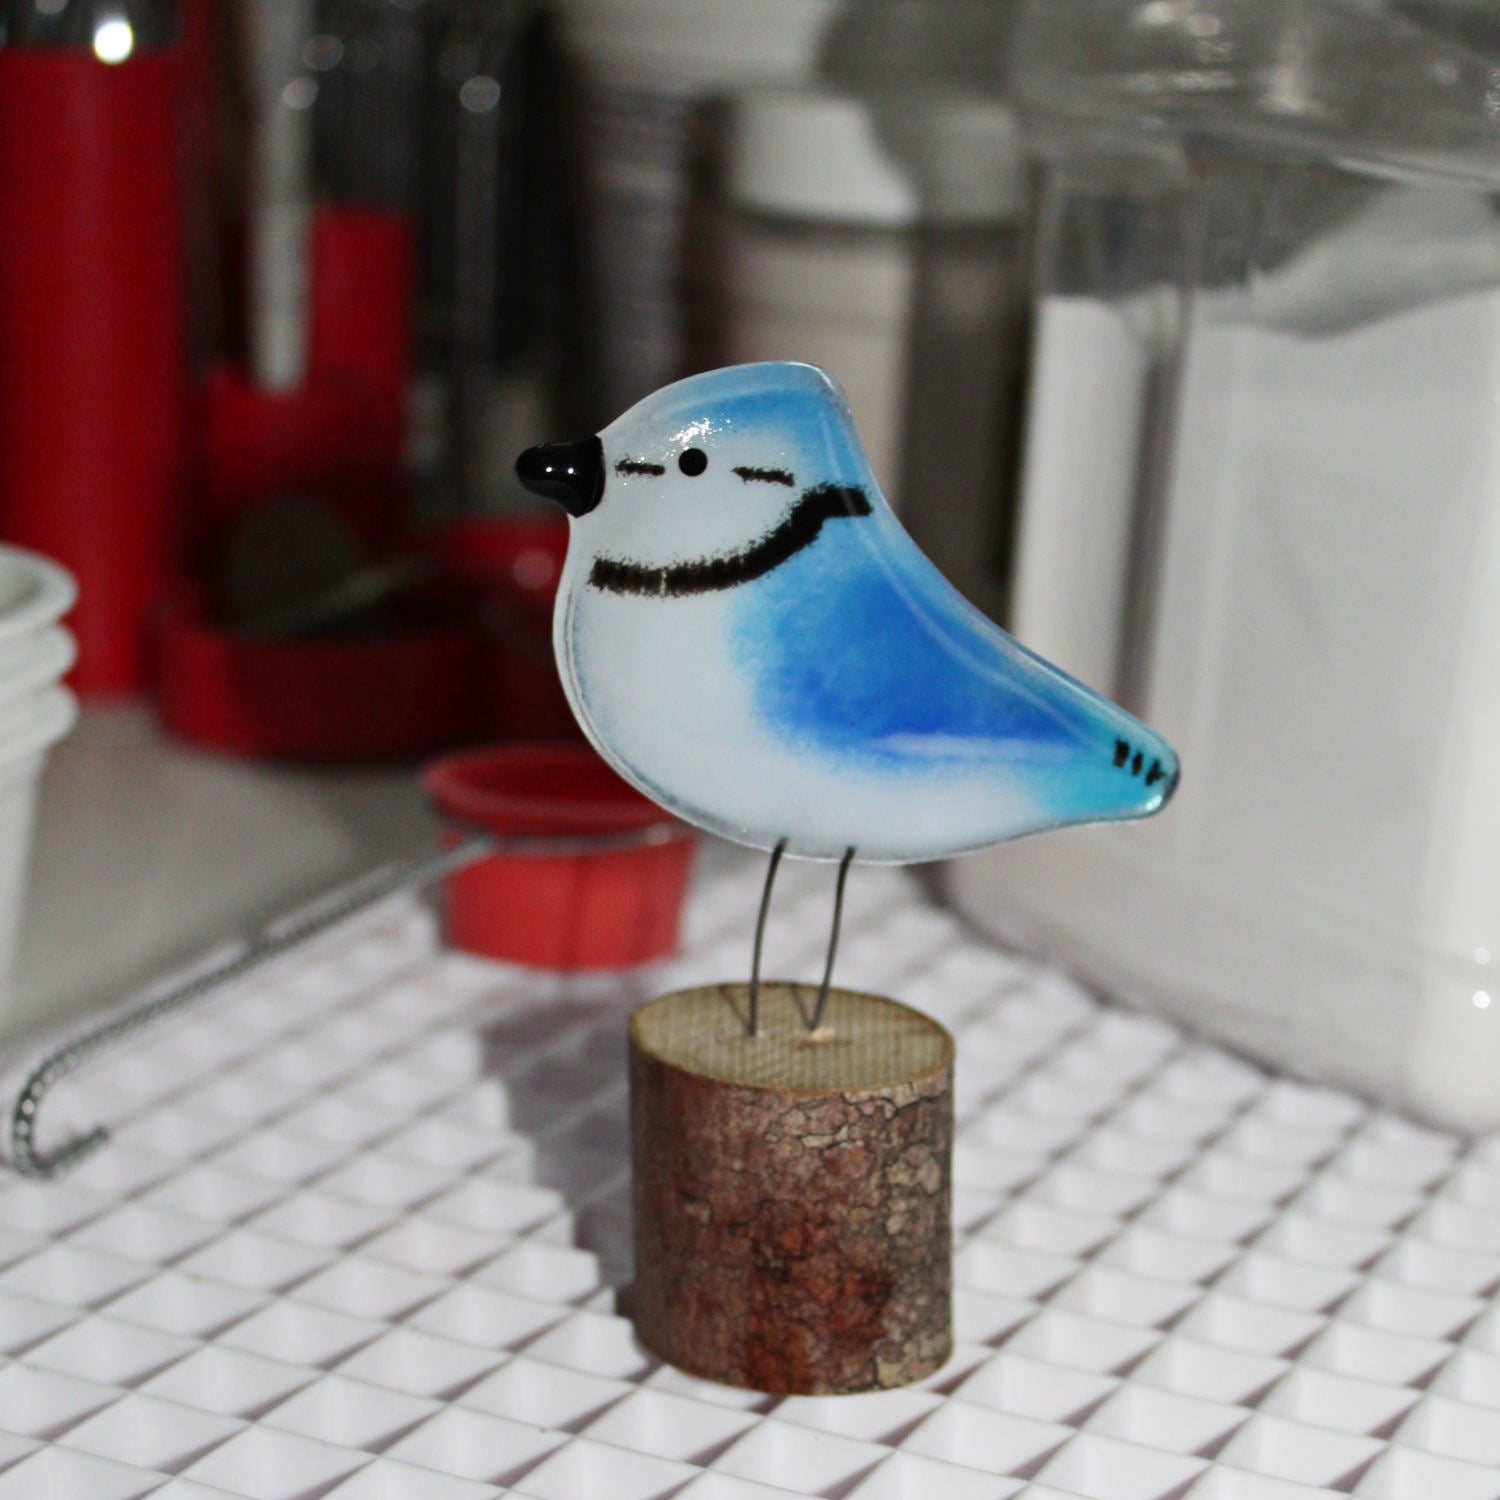 A blue and white glass blue jay bird perches on a log.